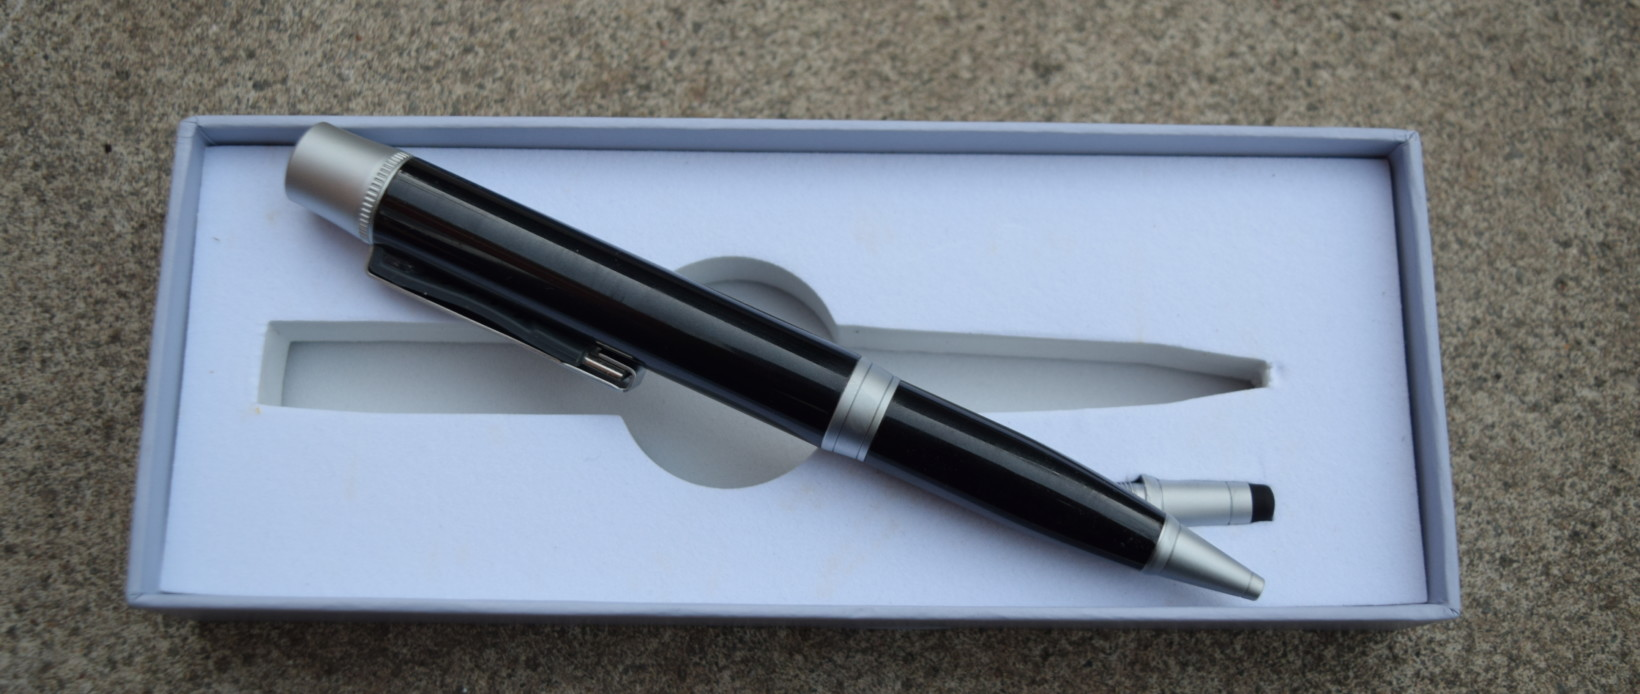 Beyond Ink is a pen with a built-in battery and USB drive